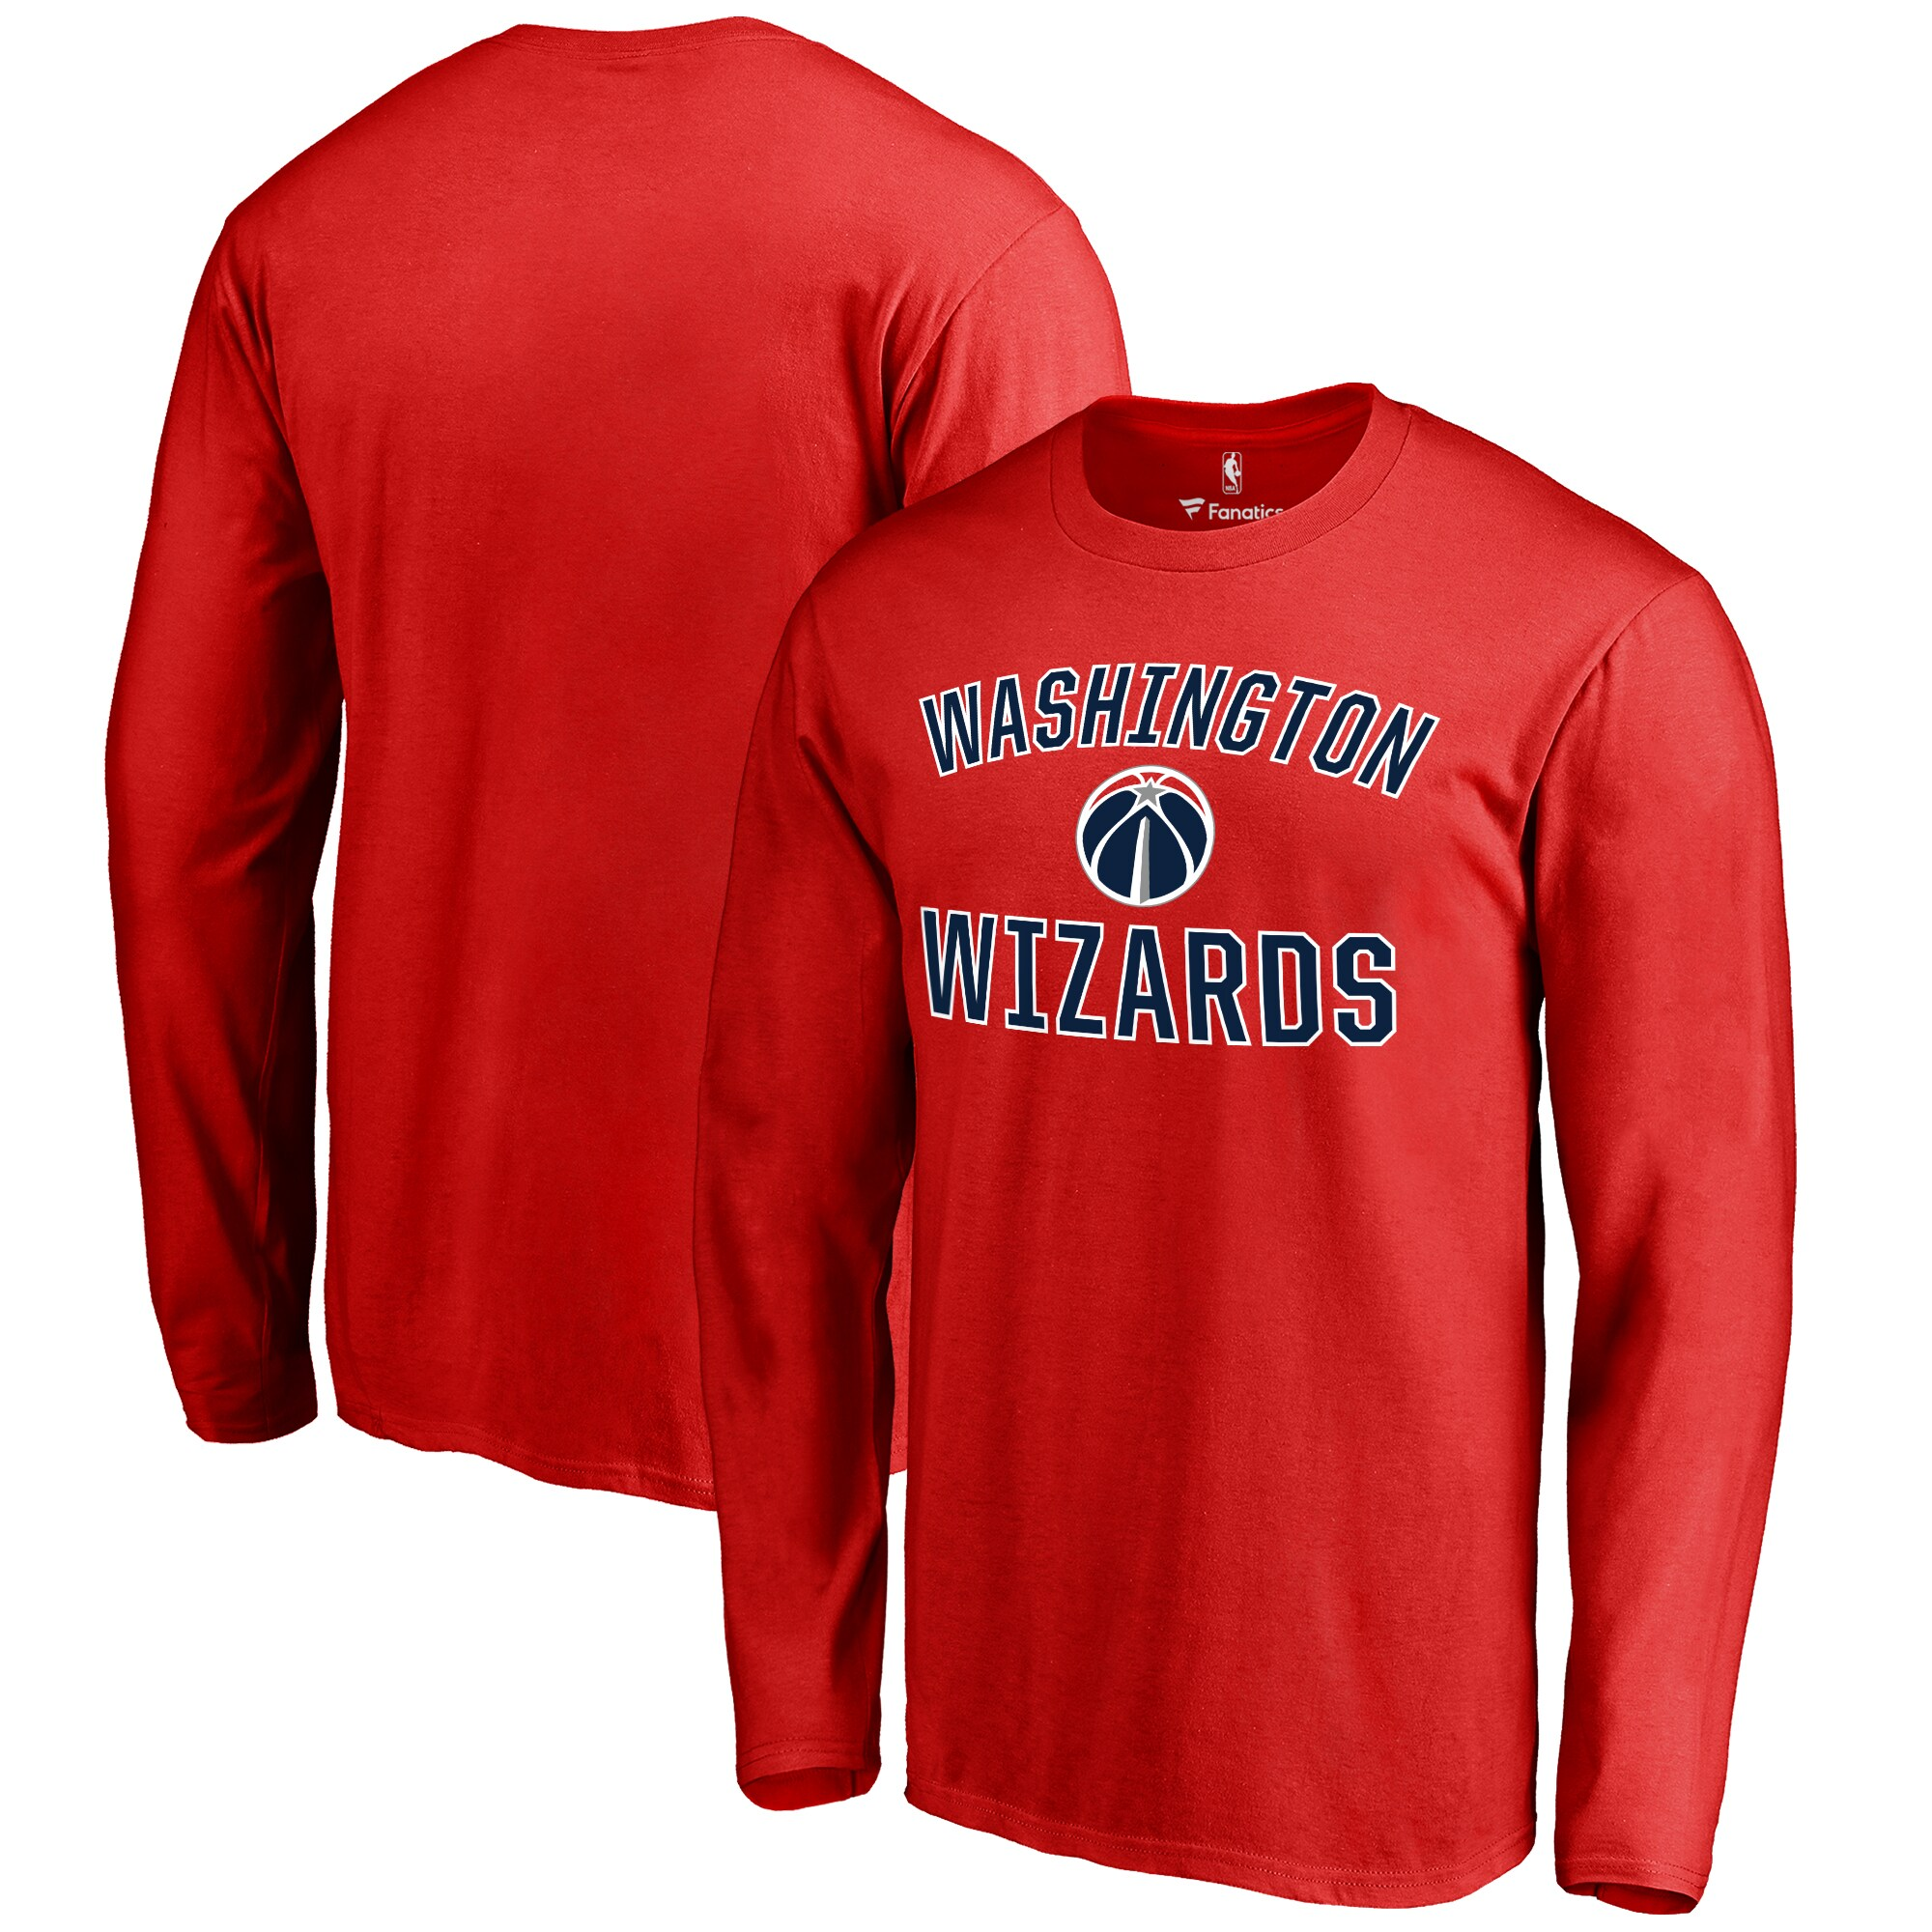 Washington Wizards Victory Arch Long Sleeve T-Shirt - Red